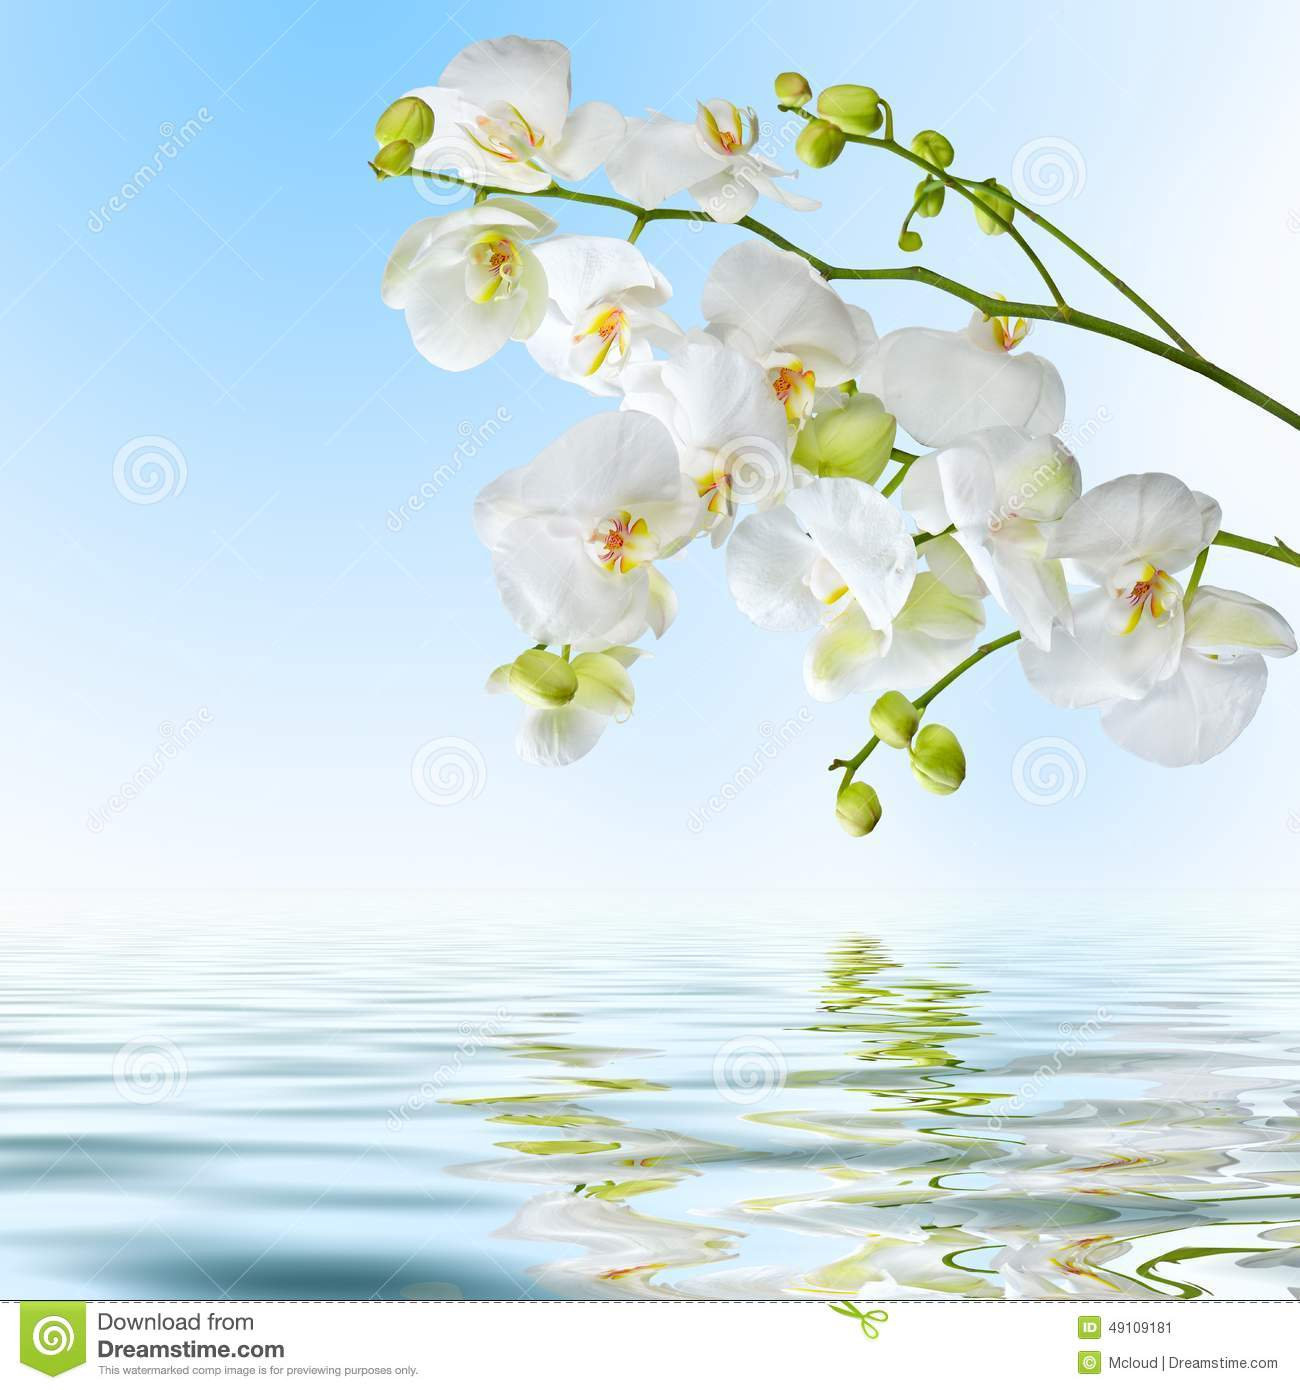 White Orchid Water Pink: Beautiful White Orchid Flowers Reflected In Water Stock